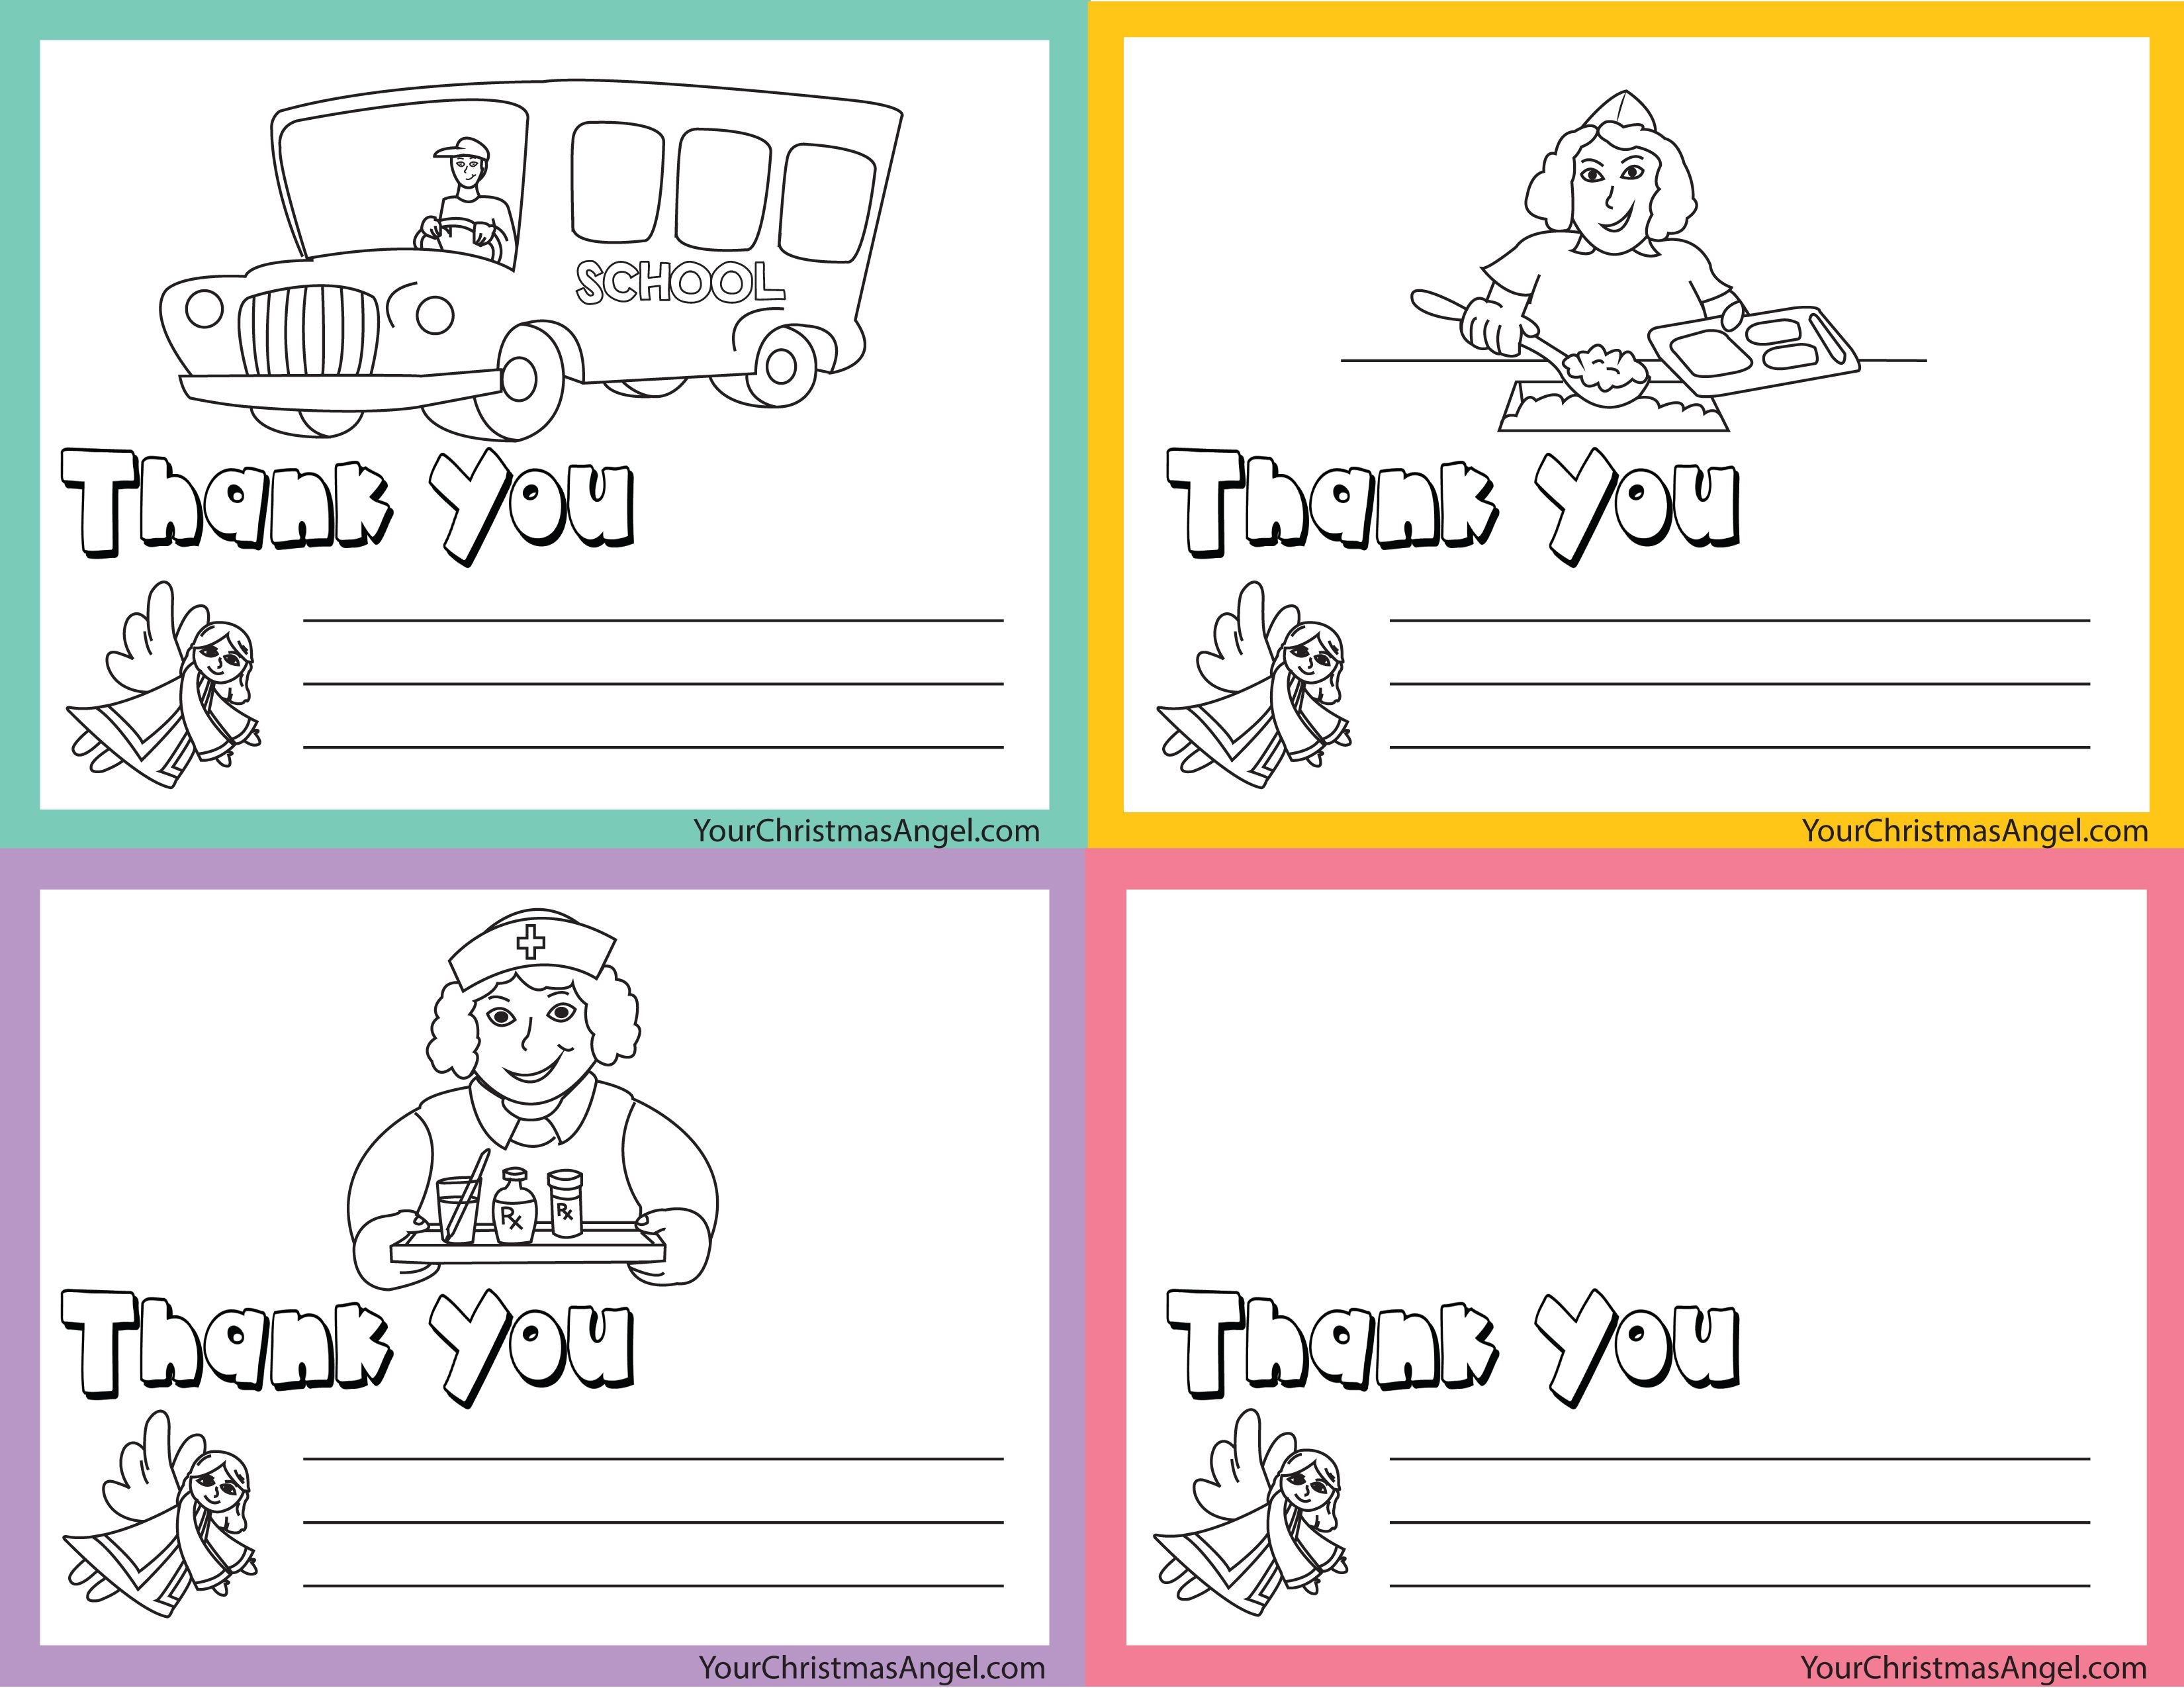 Thank You Cards For Those In Our School Systems Great